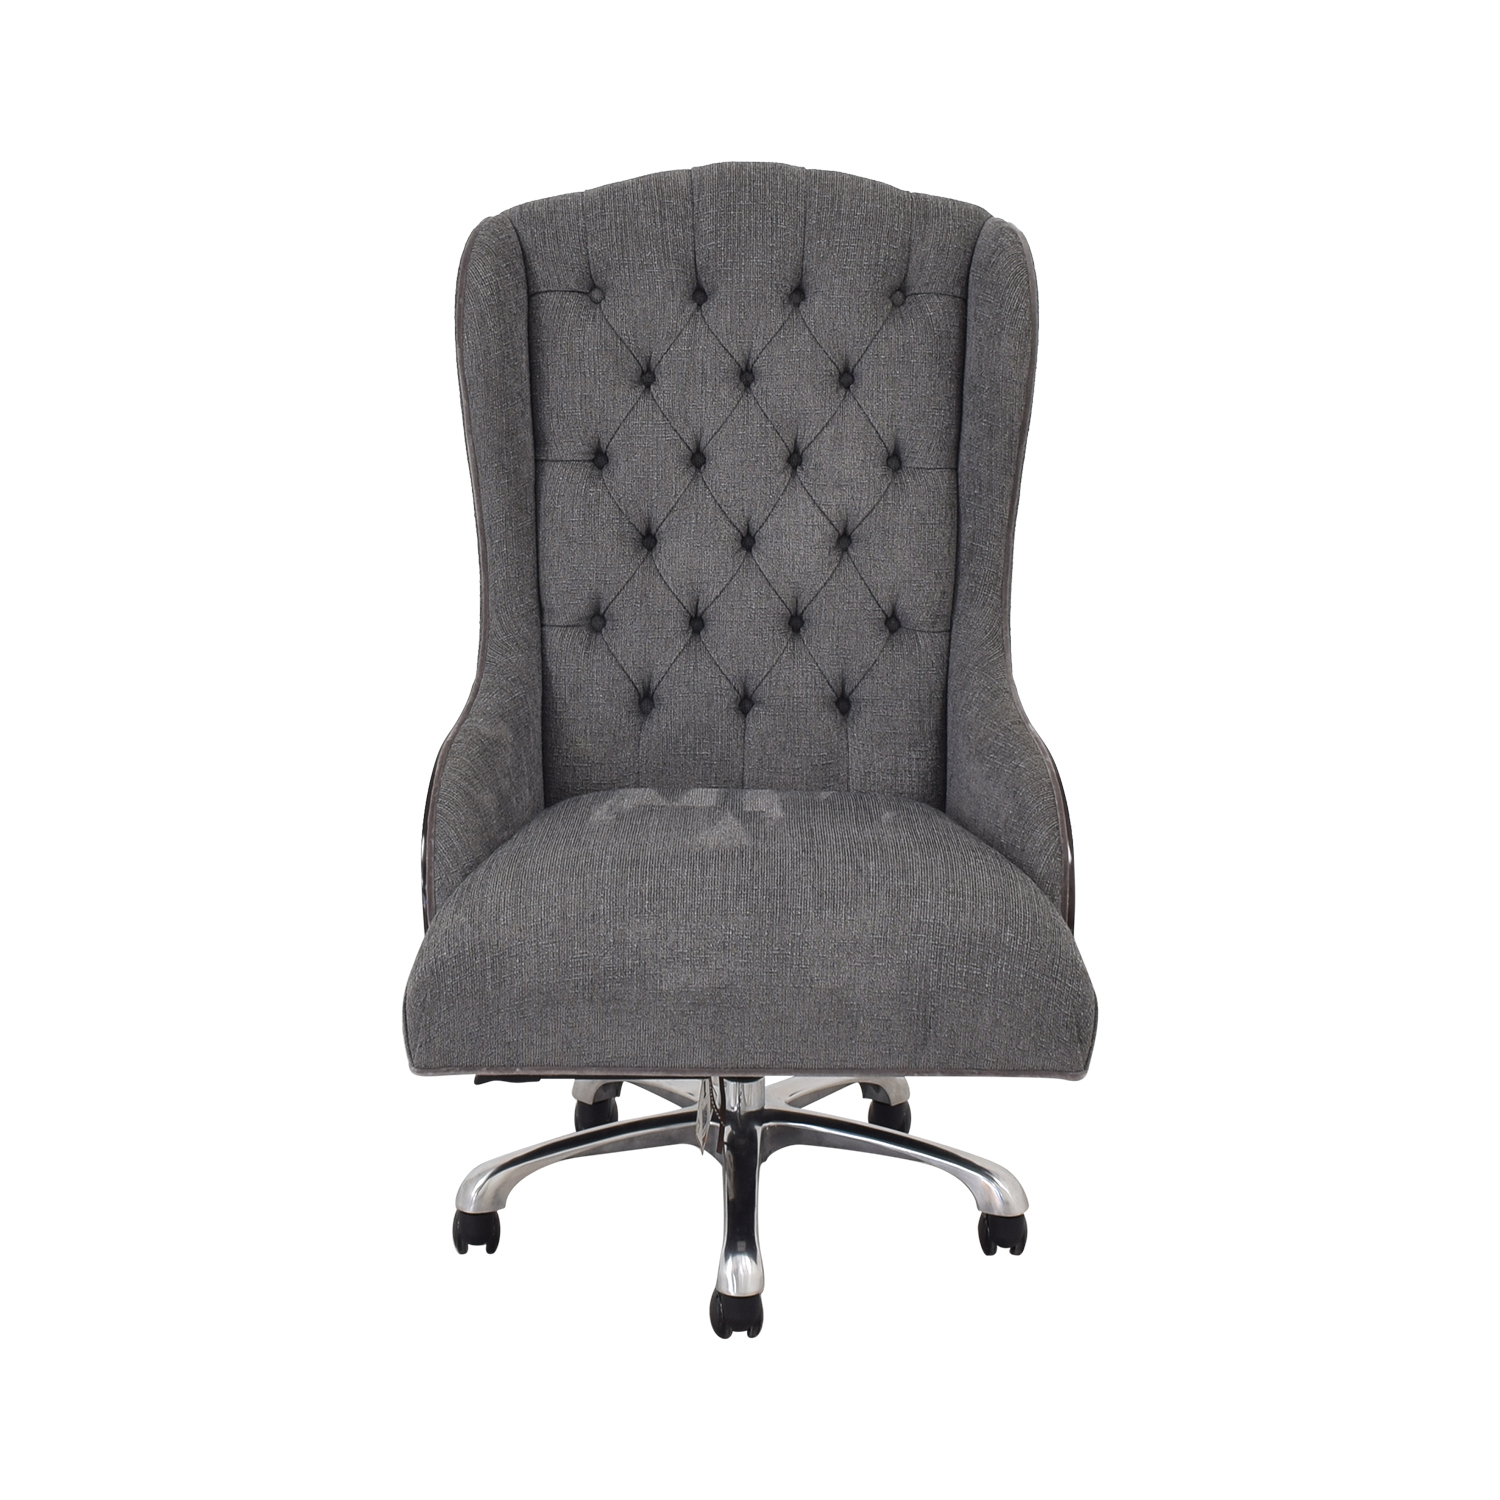 shop Christopher Guy Christopher Guy The Chairman Office Chair online